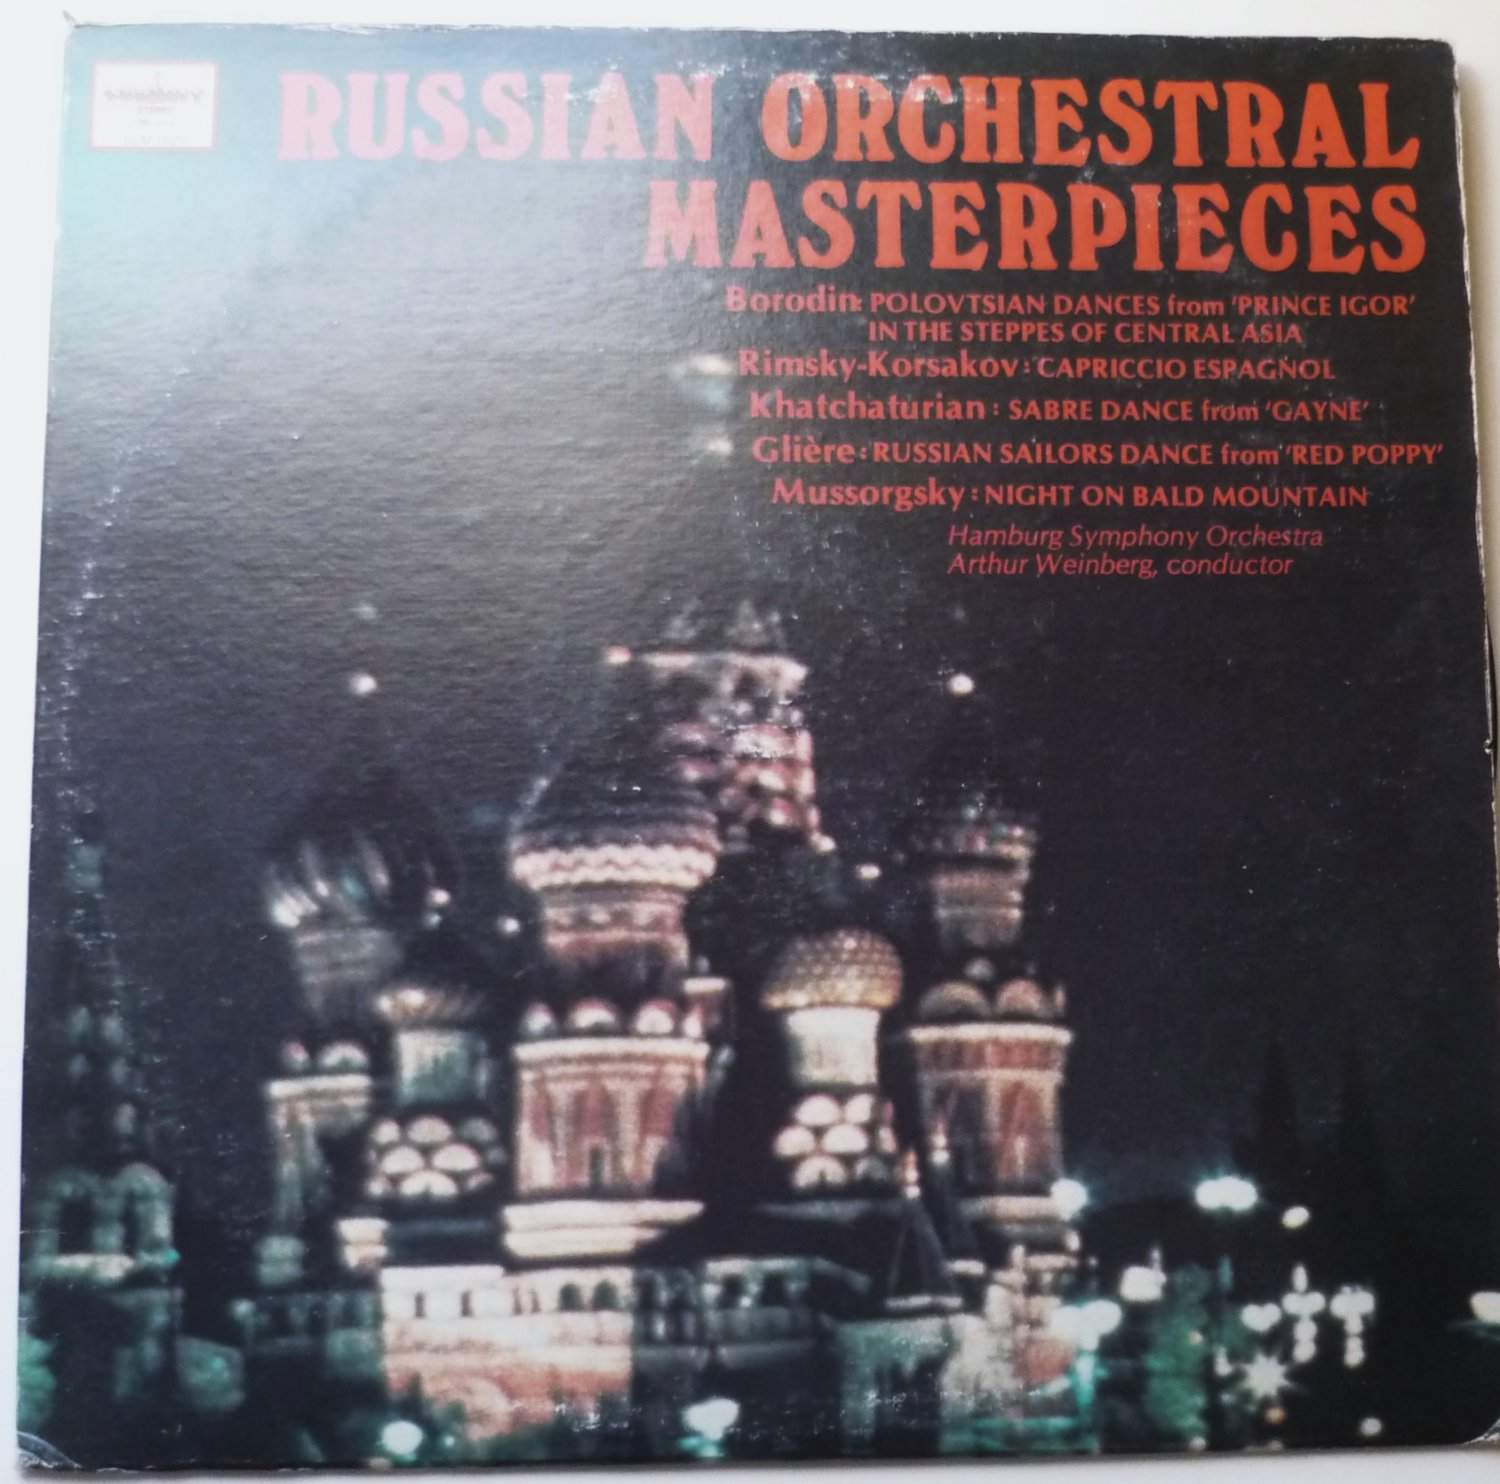 Russian Orchestral Masterpieces lp SUM 1029 by Various Artists